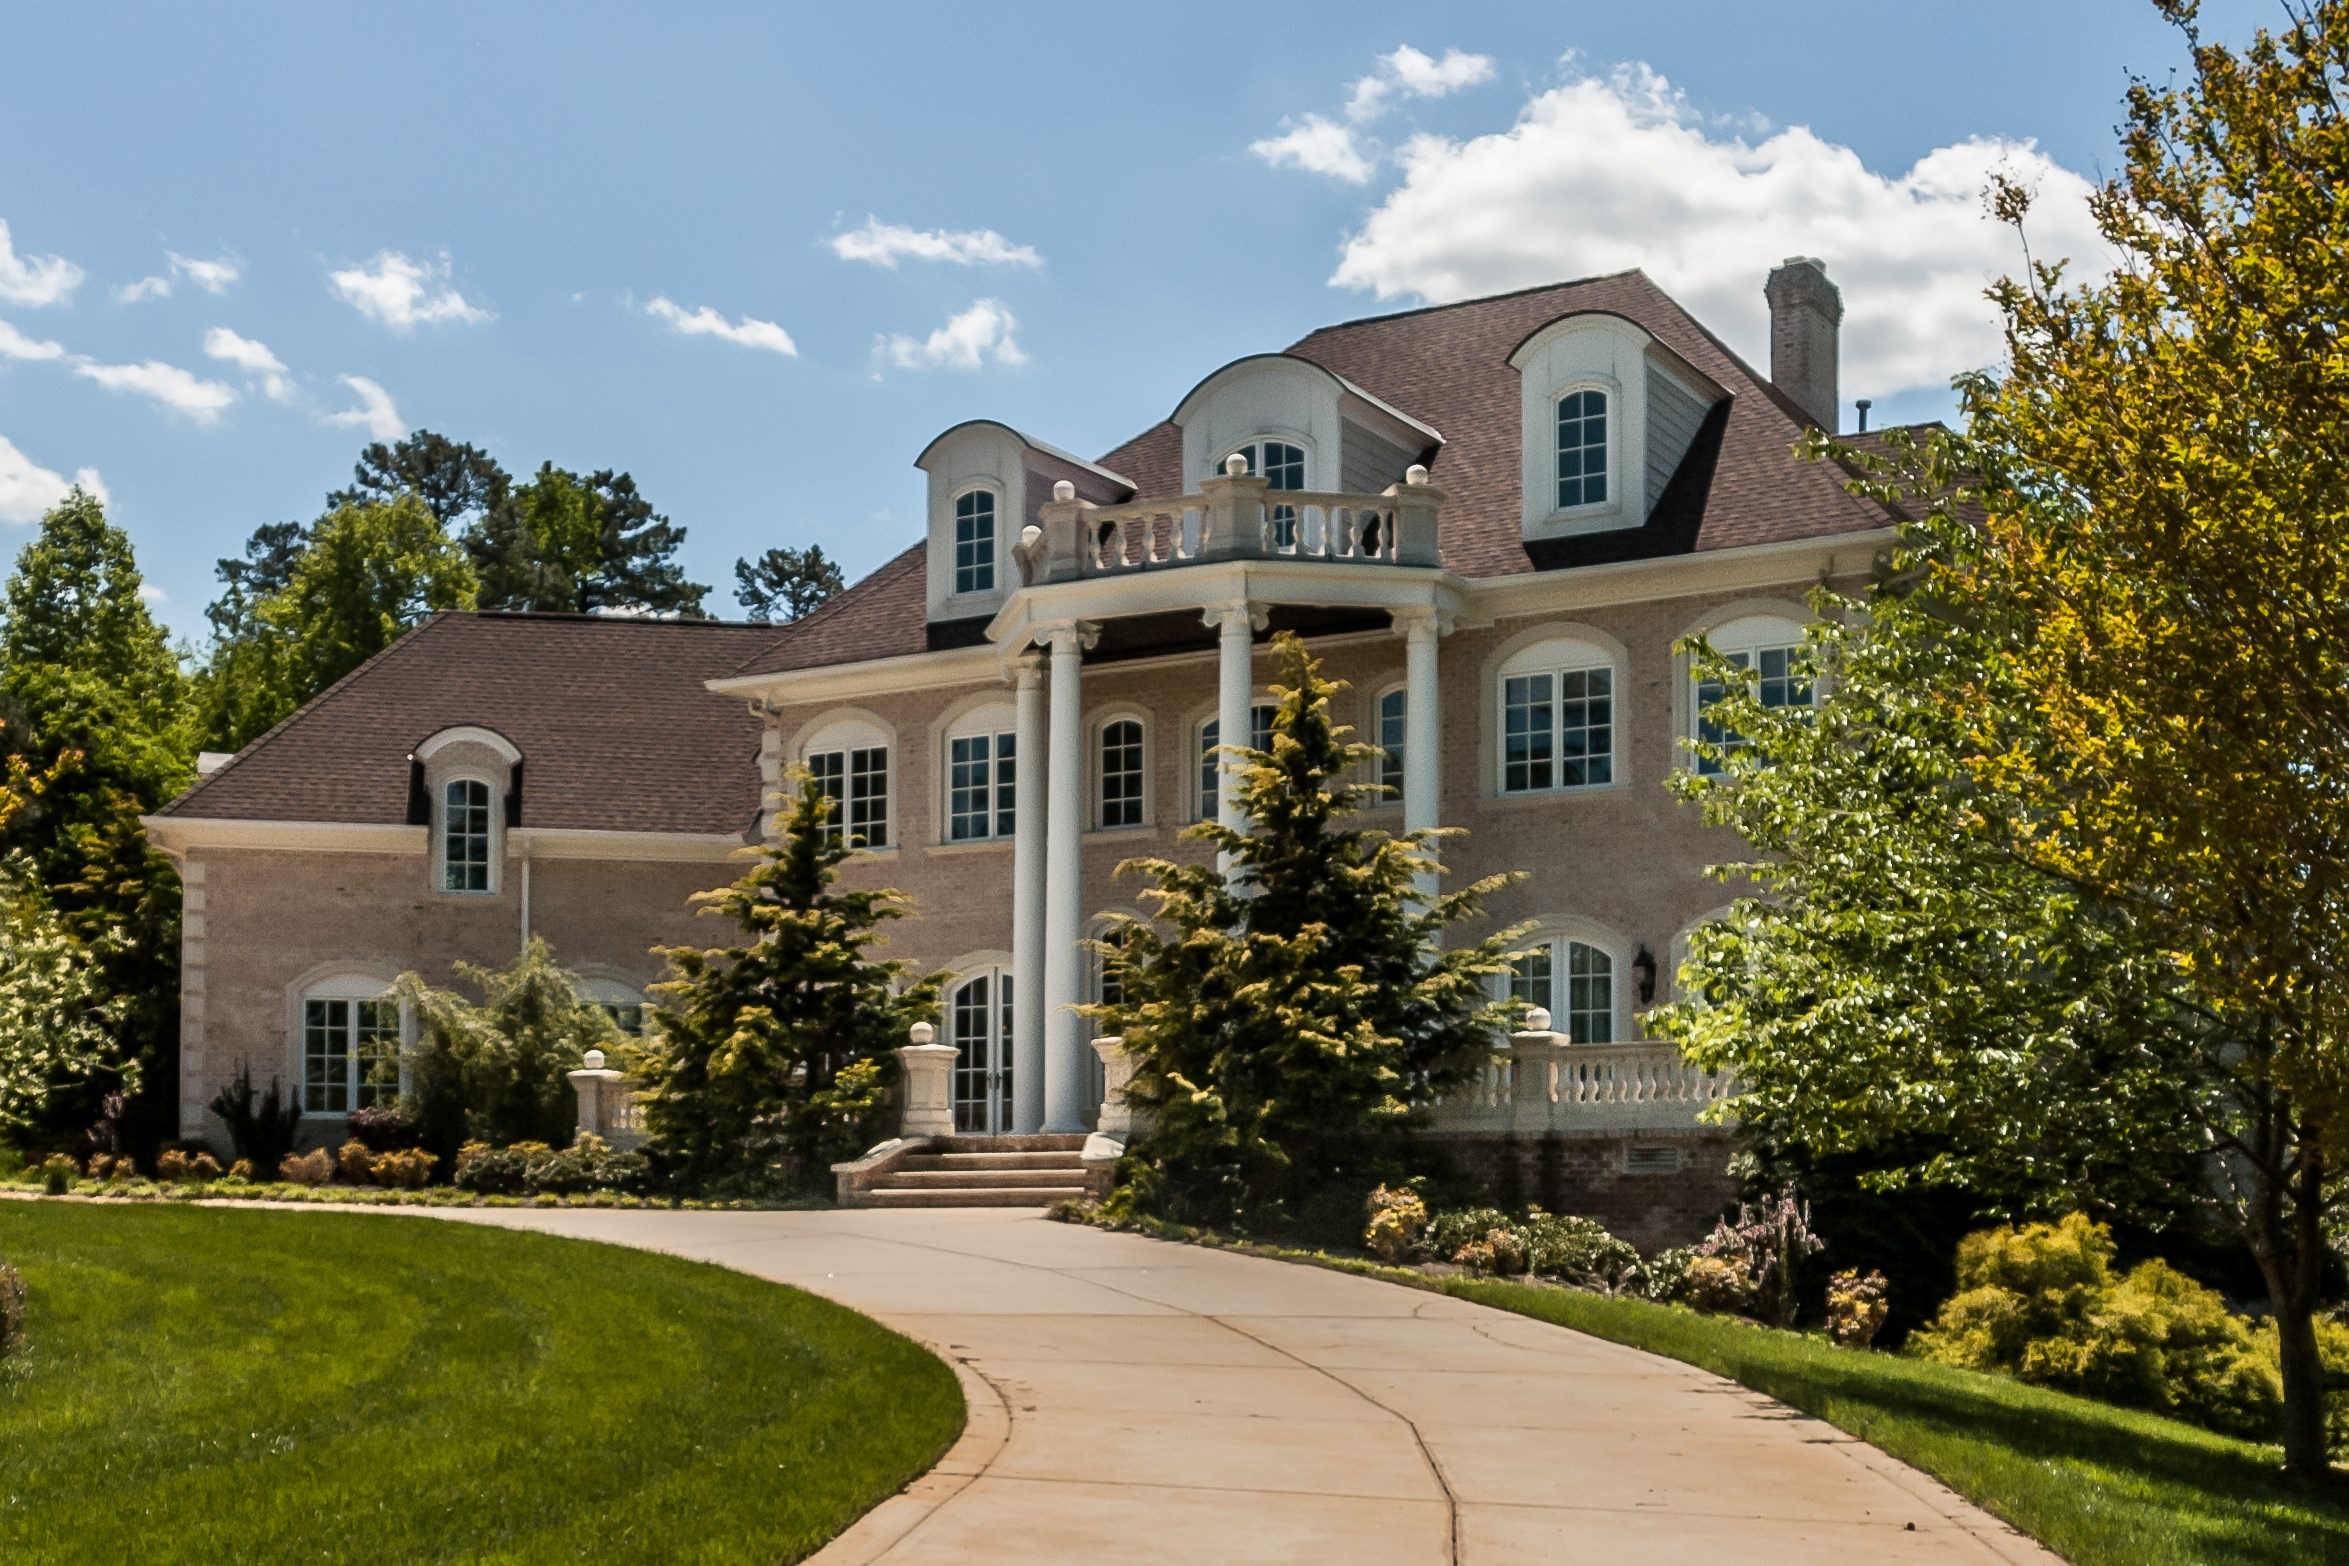 Single Family Home for Sale at Devon Estate 1000 Clovelly Court Raleigh, North Carolina 27614 United States